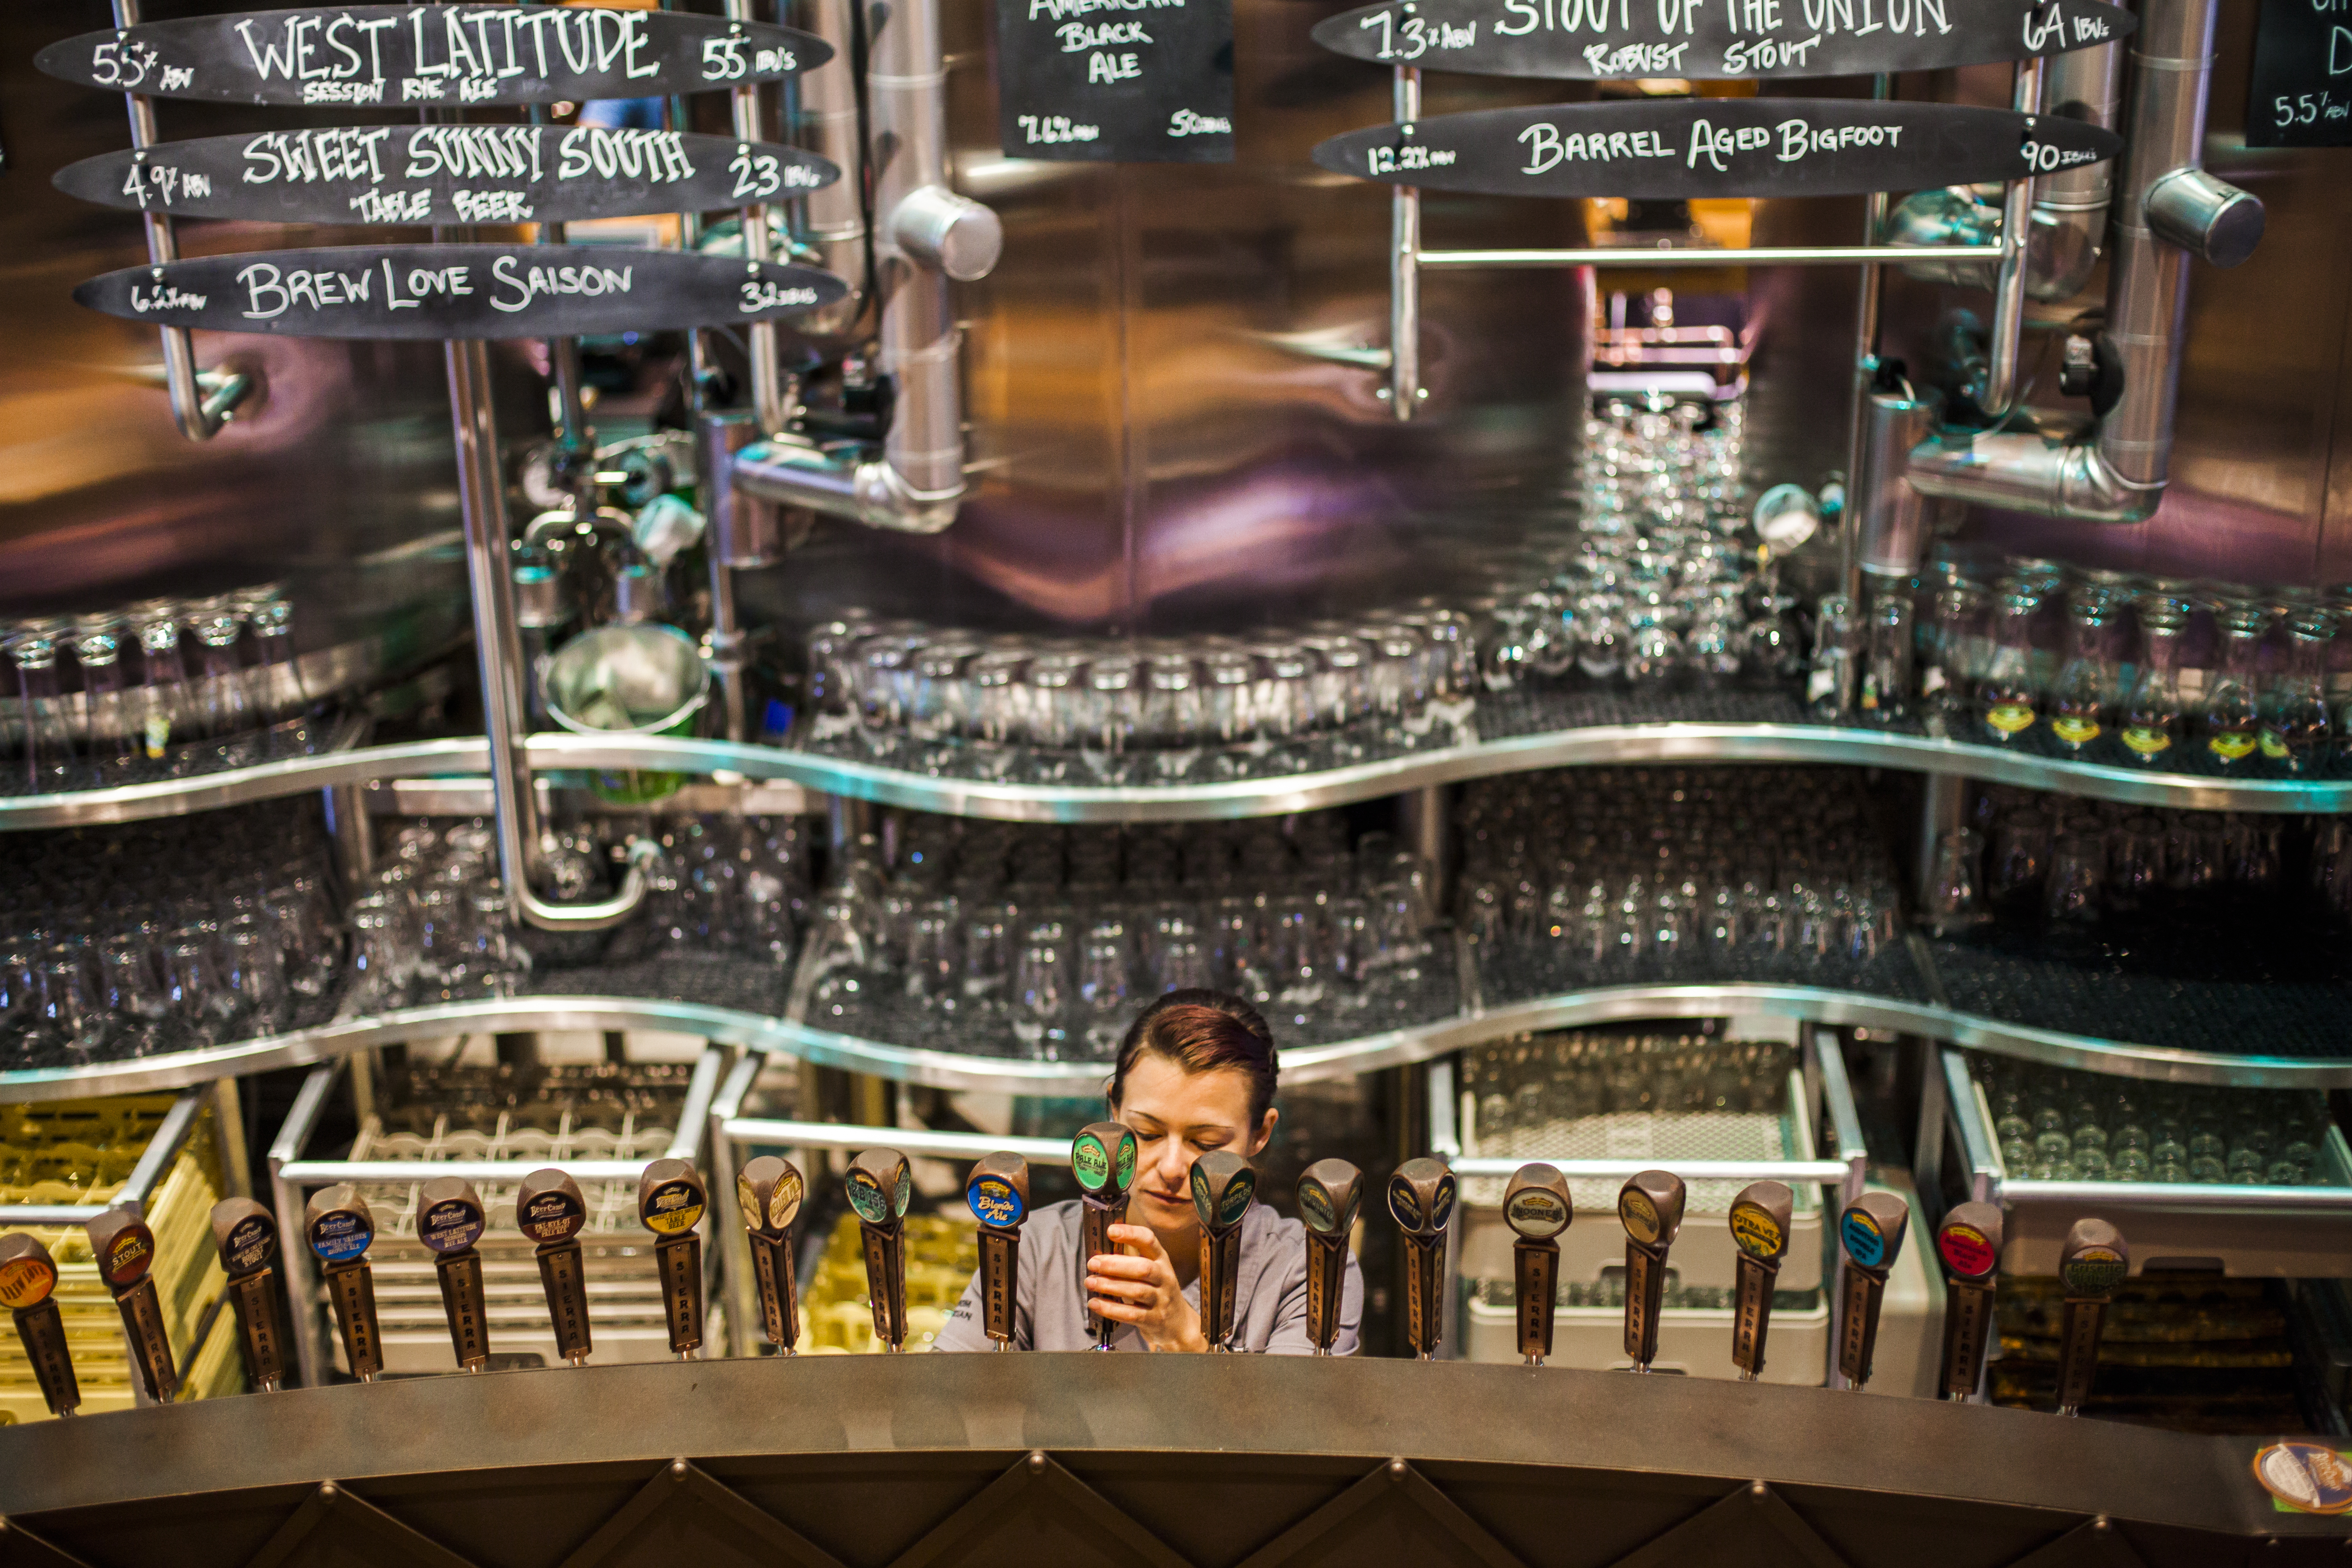 Bartender Morgan Persky pours a pint from one of the 23 beers on tap at Sierra Nevada's taproom in Mills River, North Carolina, on the outskirts of Asheville. Must credit: Photo by Jacob Biba for The Washington Post